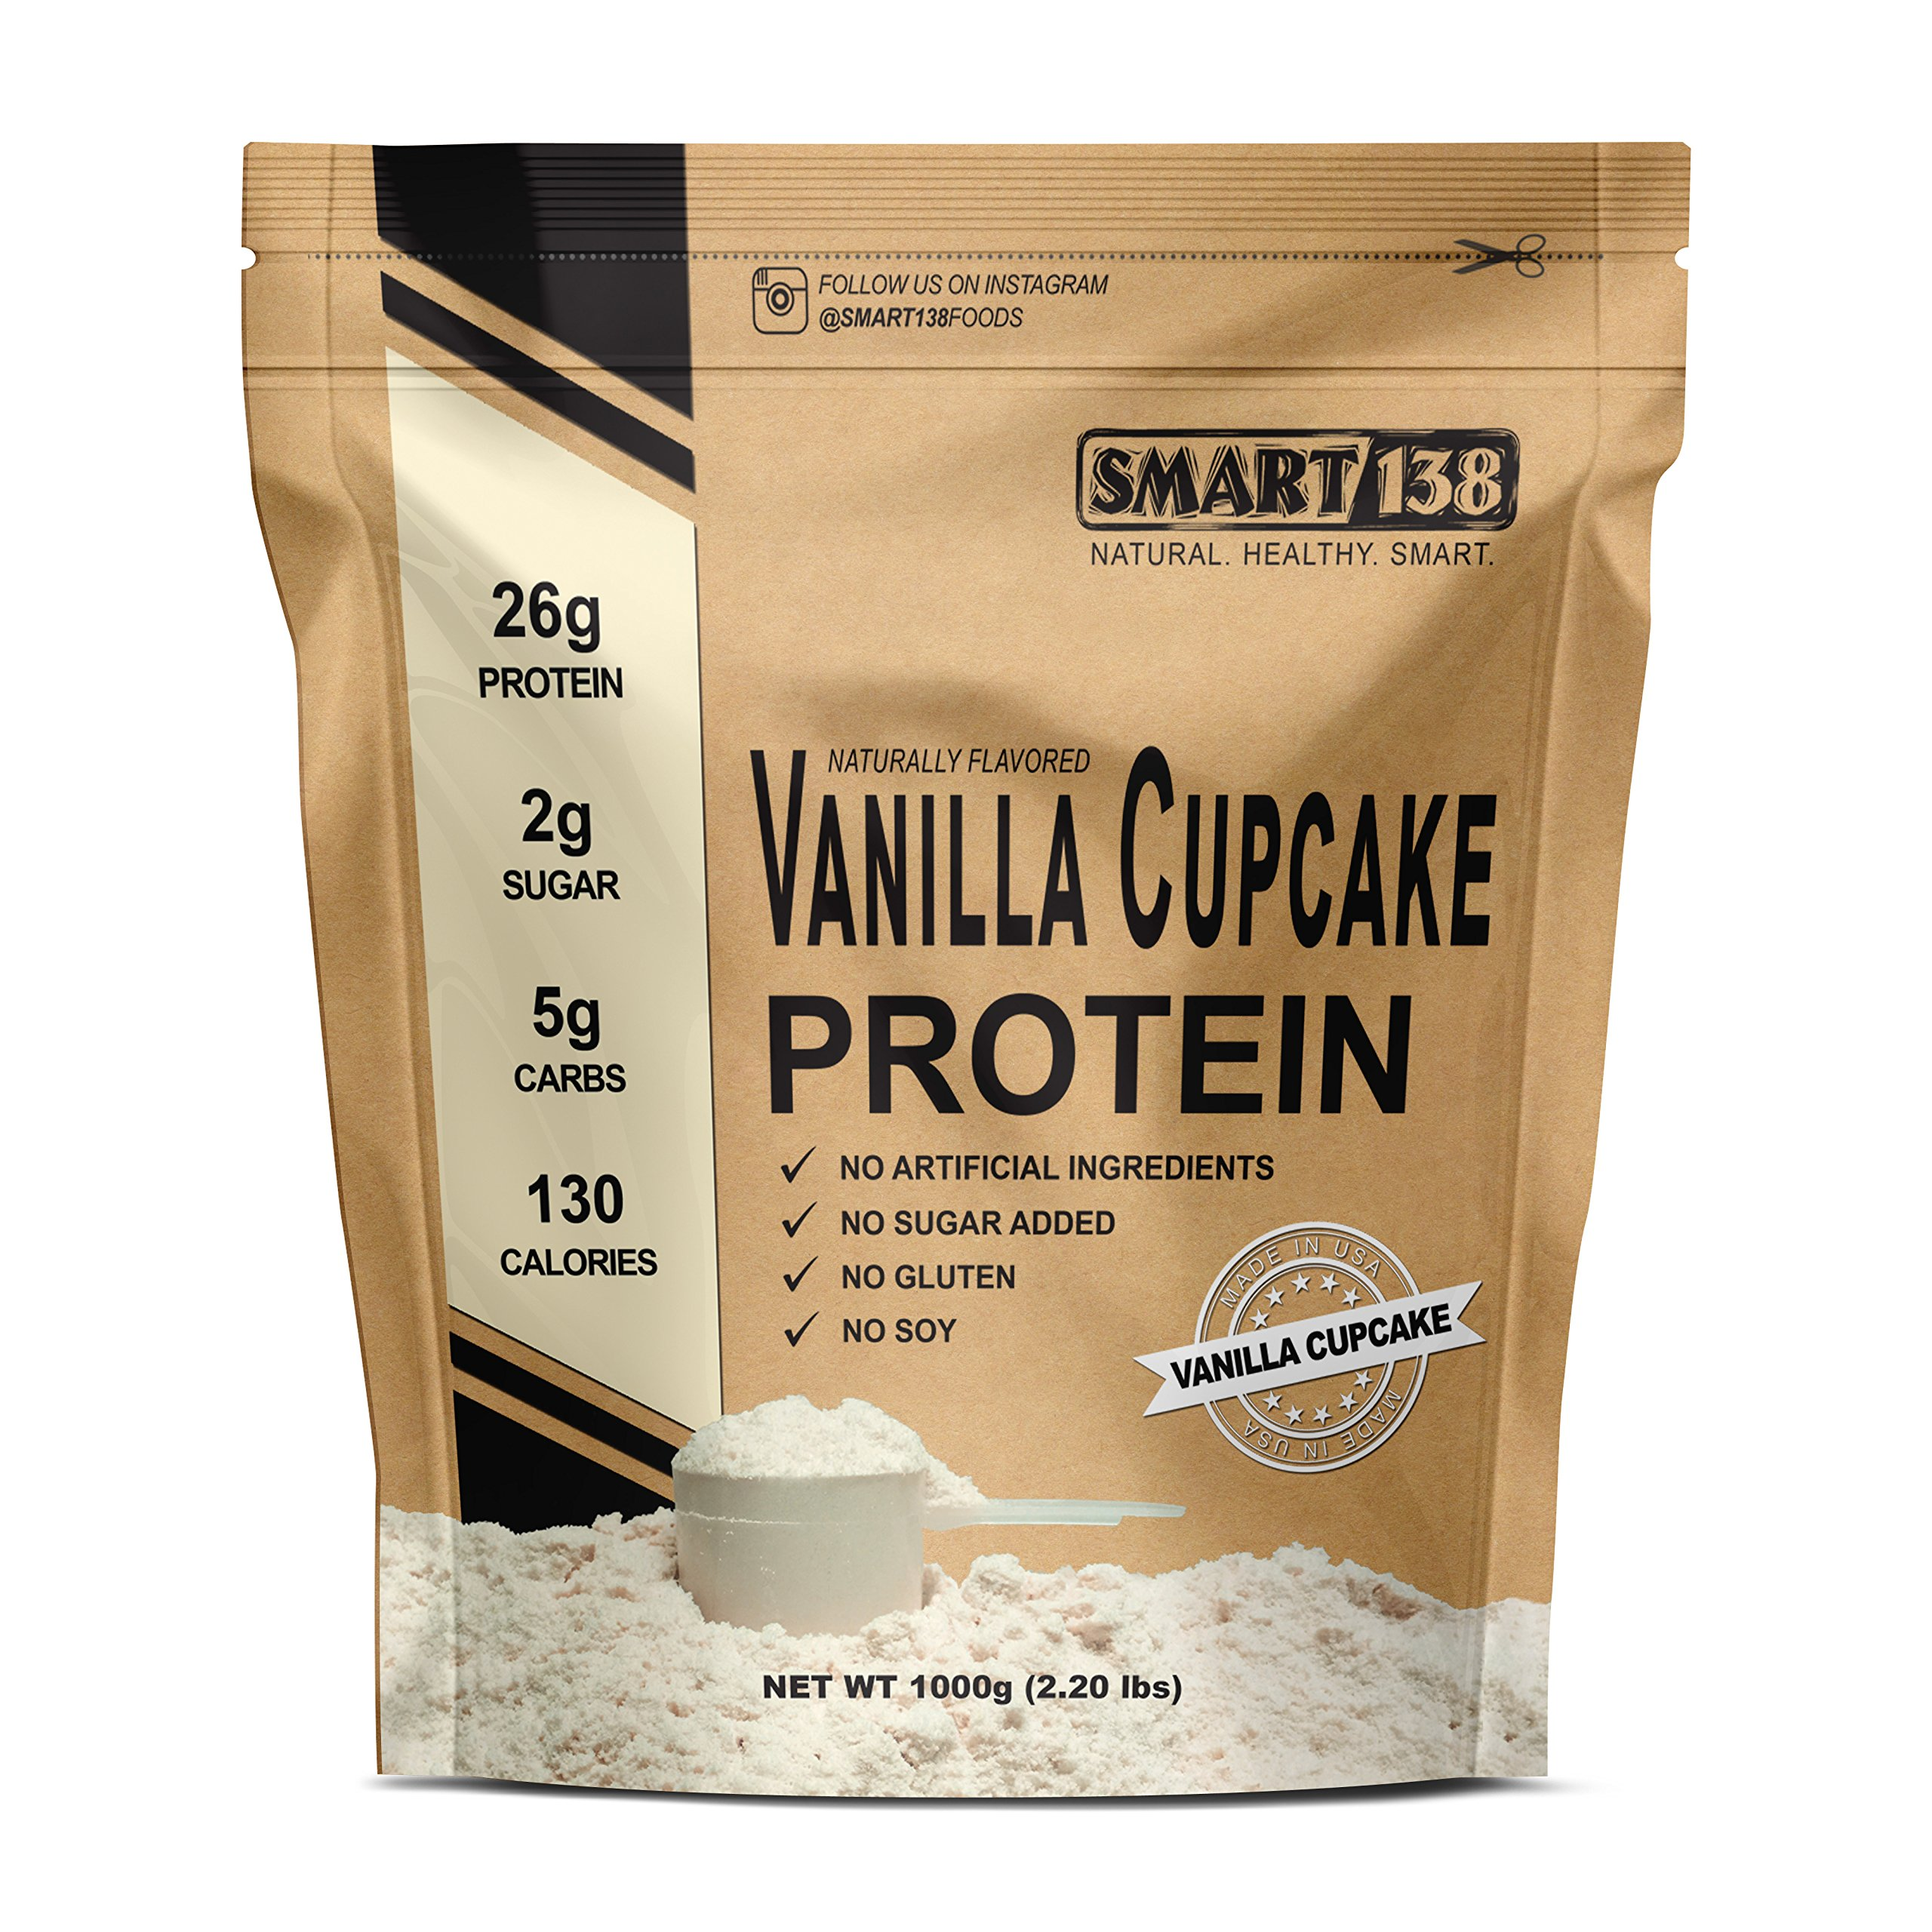 Vanille Cupcake Natural Protein Powder, Gluten-Free, Soy-Free, USA, Keto (Low Carb), Natural BCAAs by Smart138